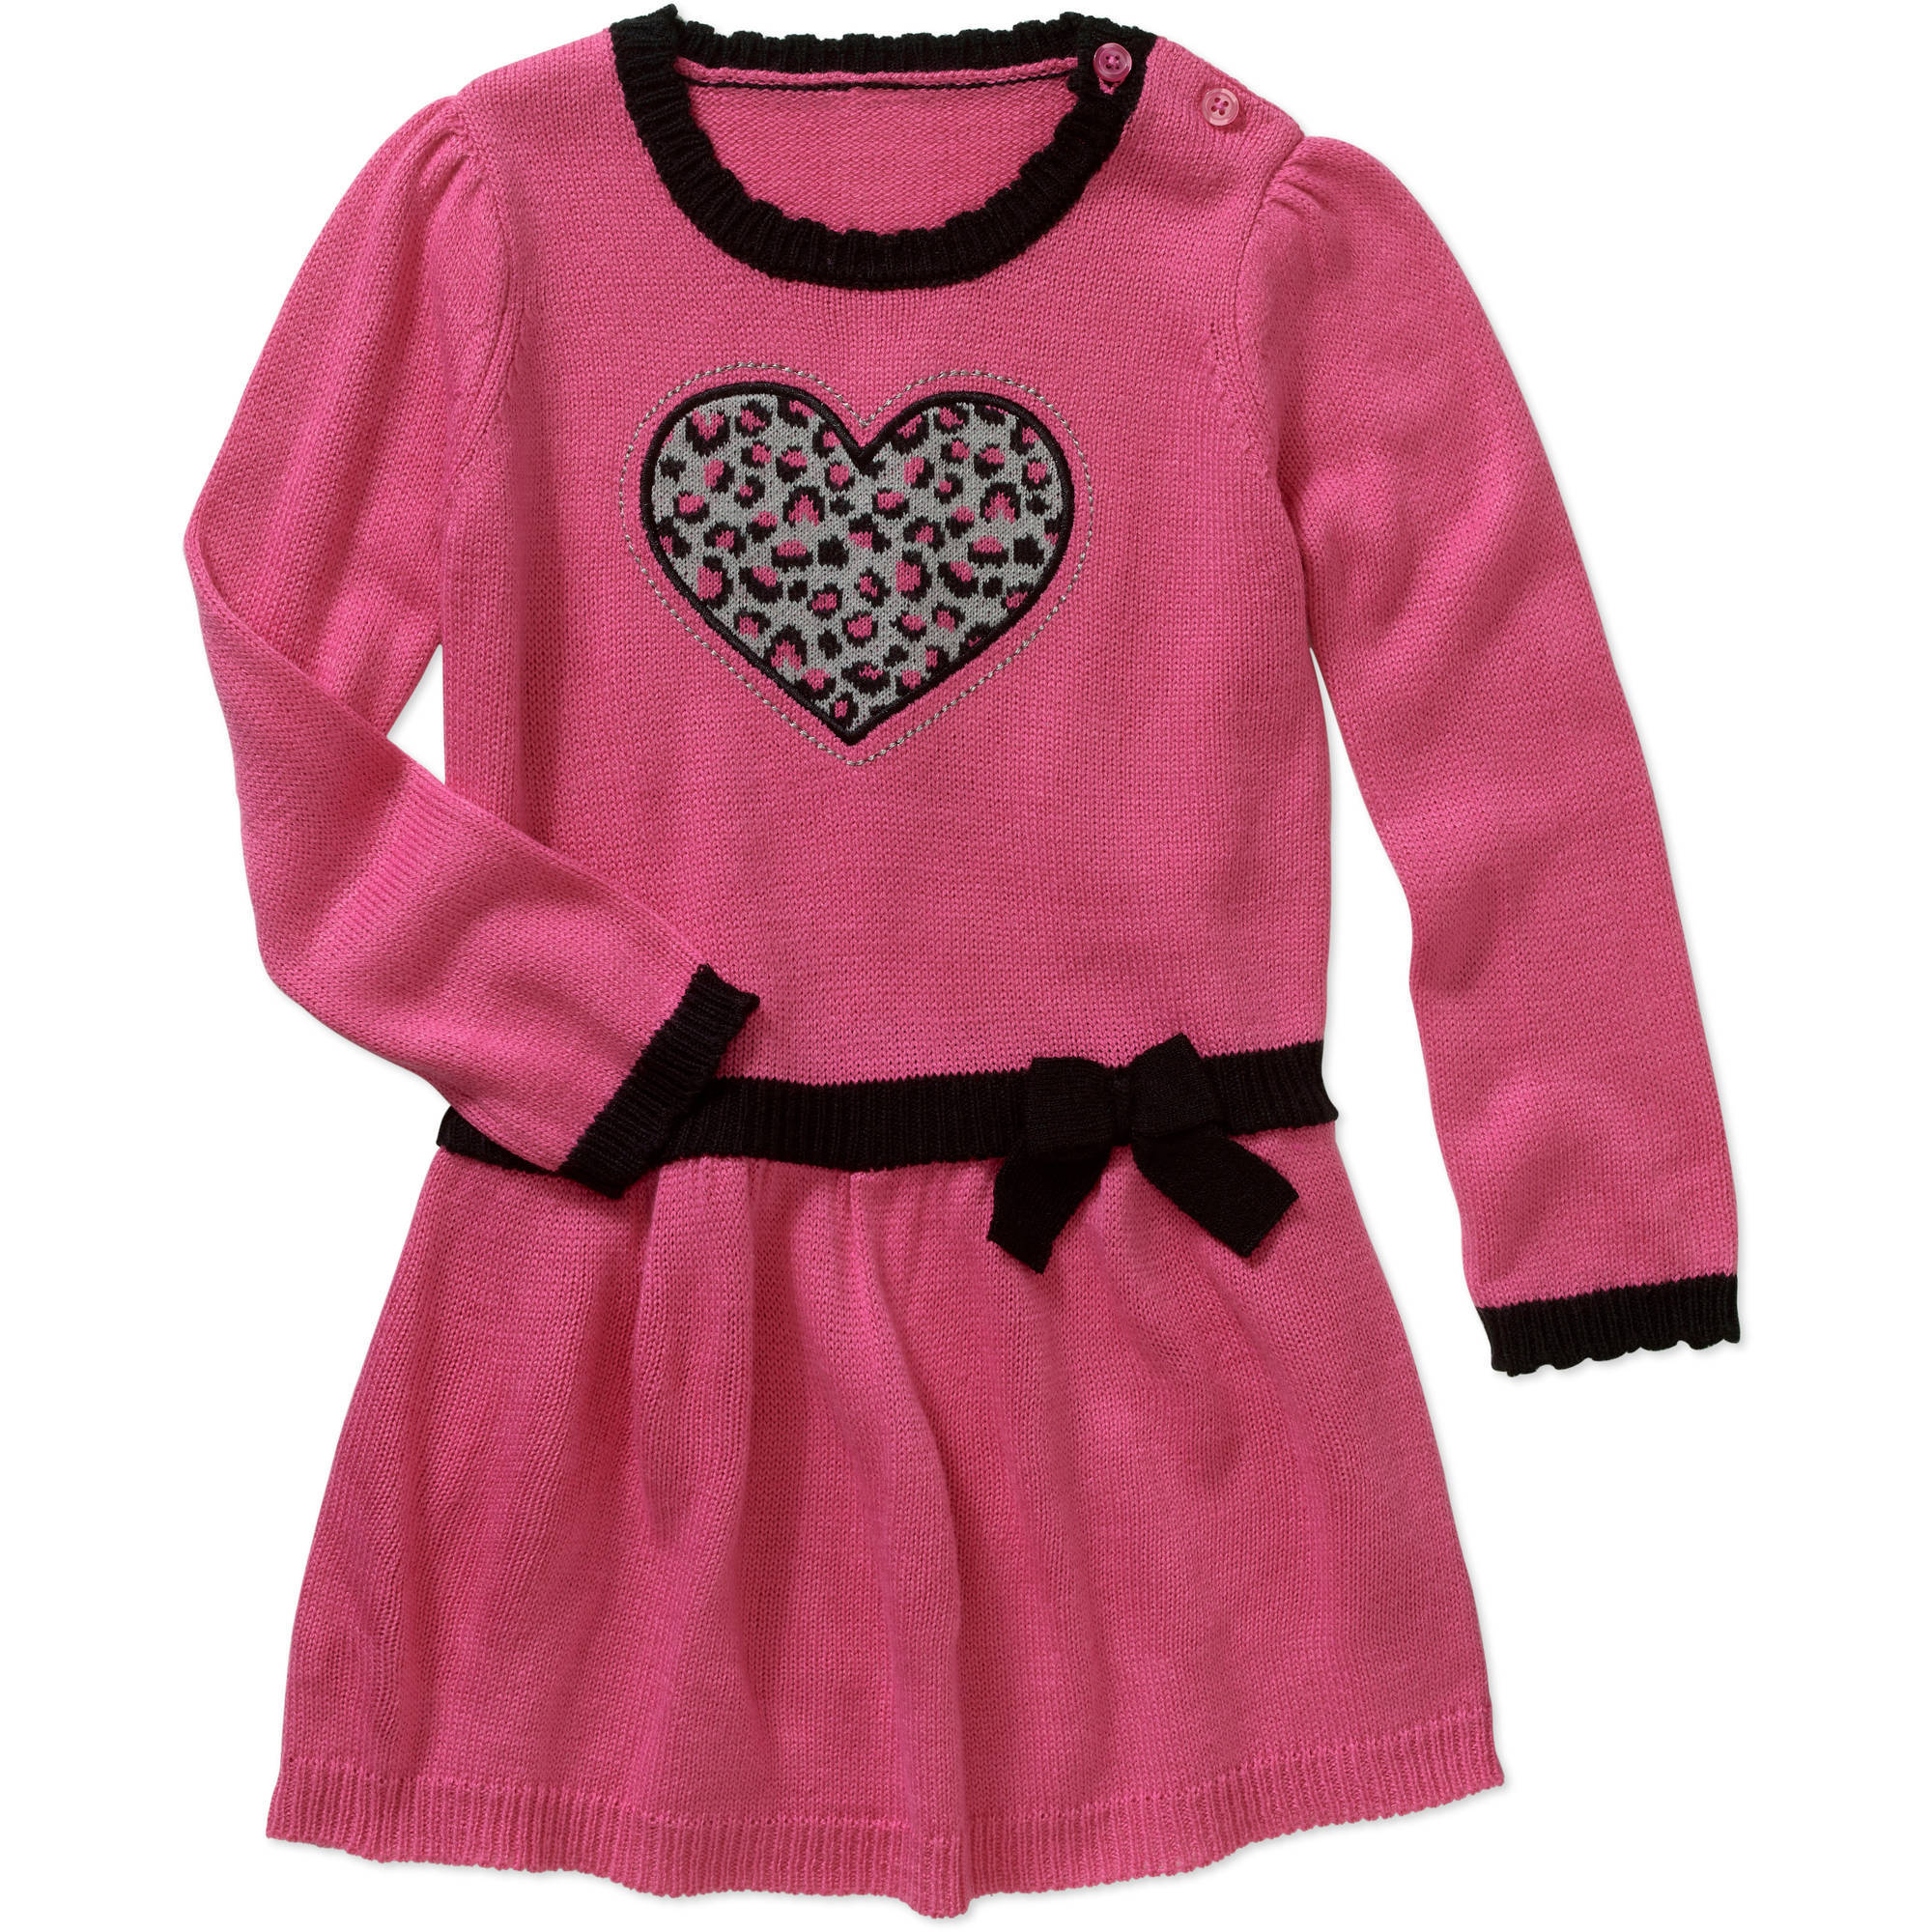 Healthtex Toddler Girls' Heart Detail Drop Waist Sweater Dress